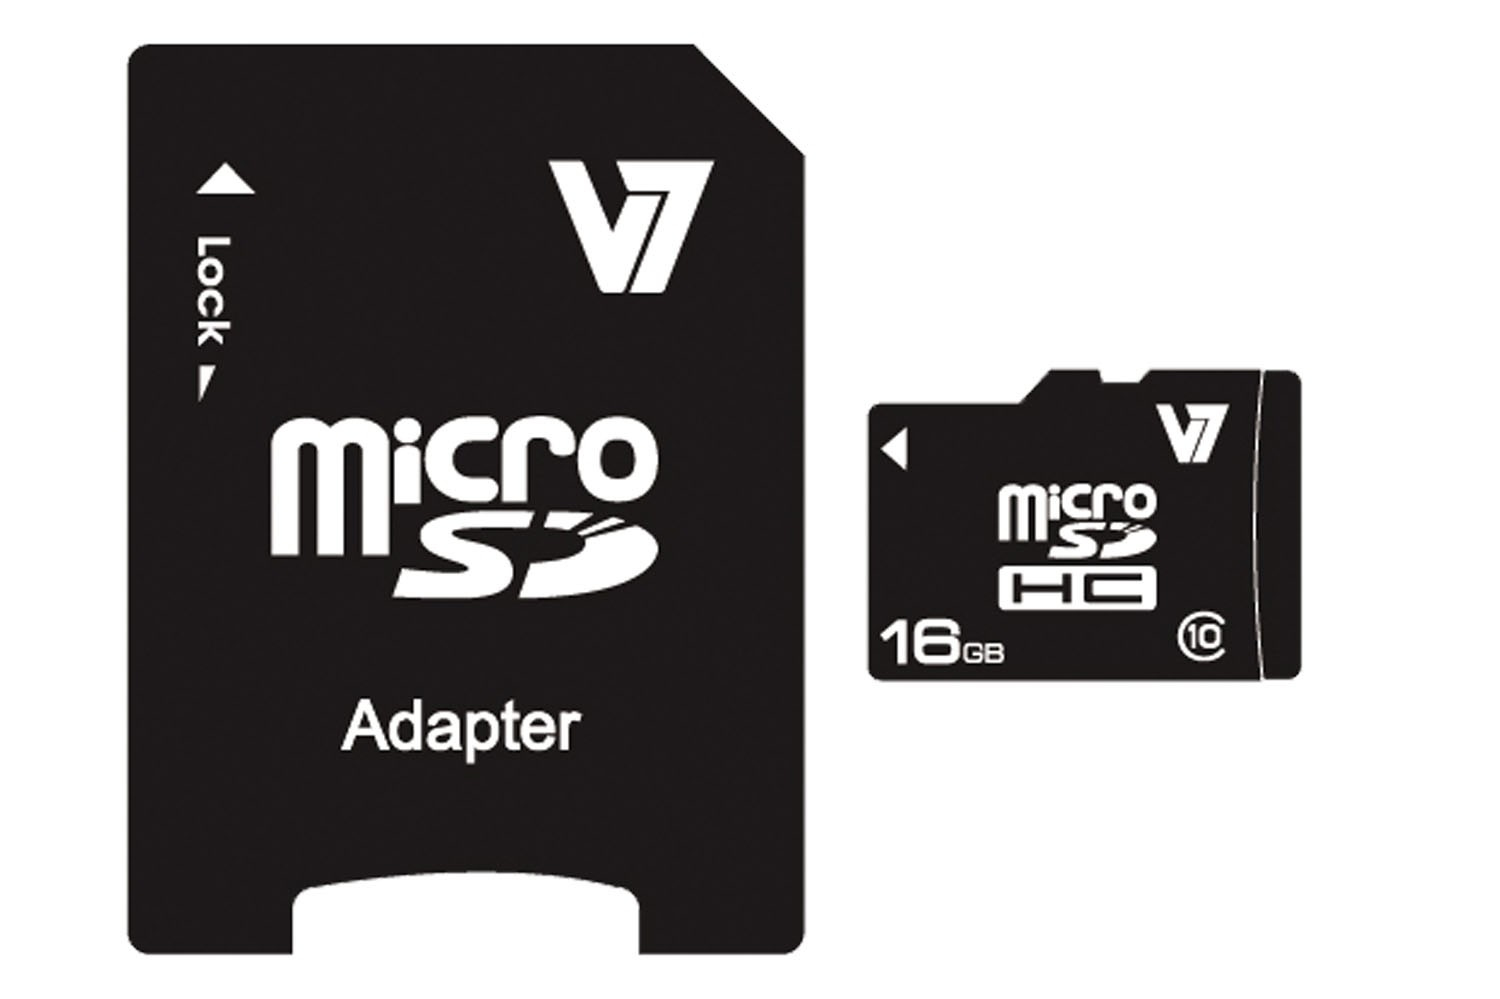 V7 VAMSDH16GCL10R-2E MICRO SDHC 16GB CLASS 10 + SD ADAPTER